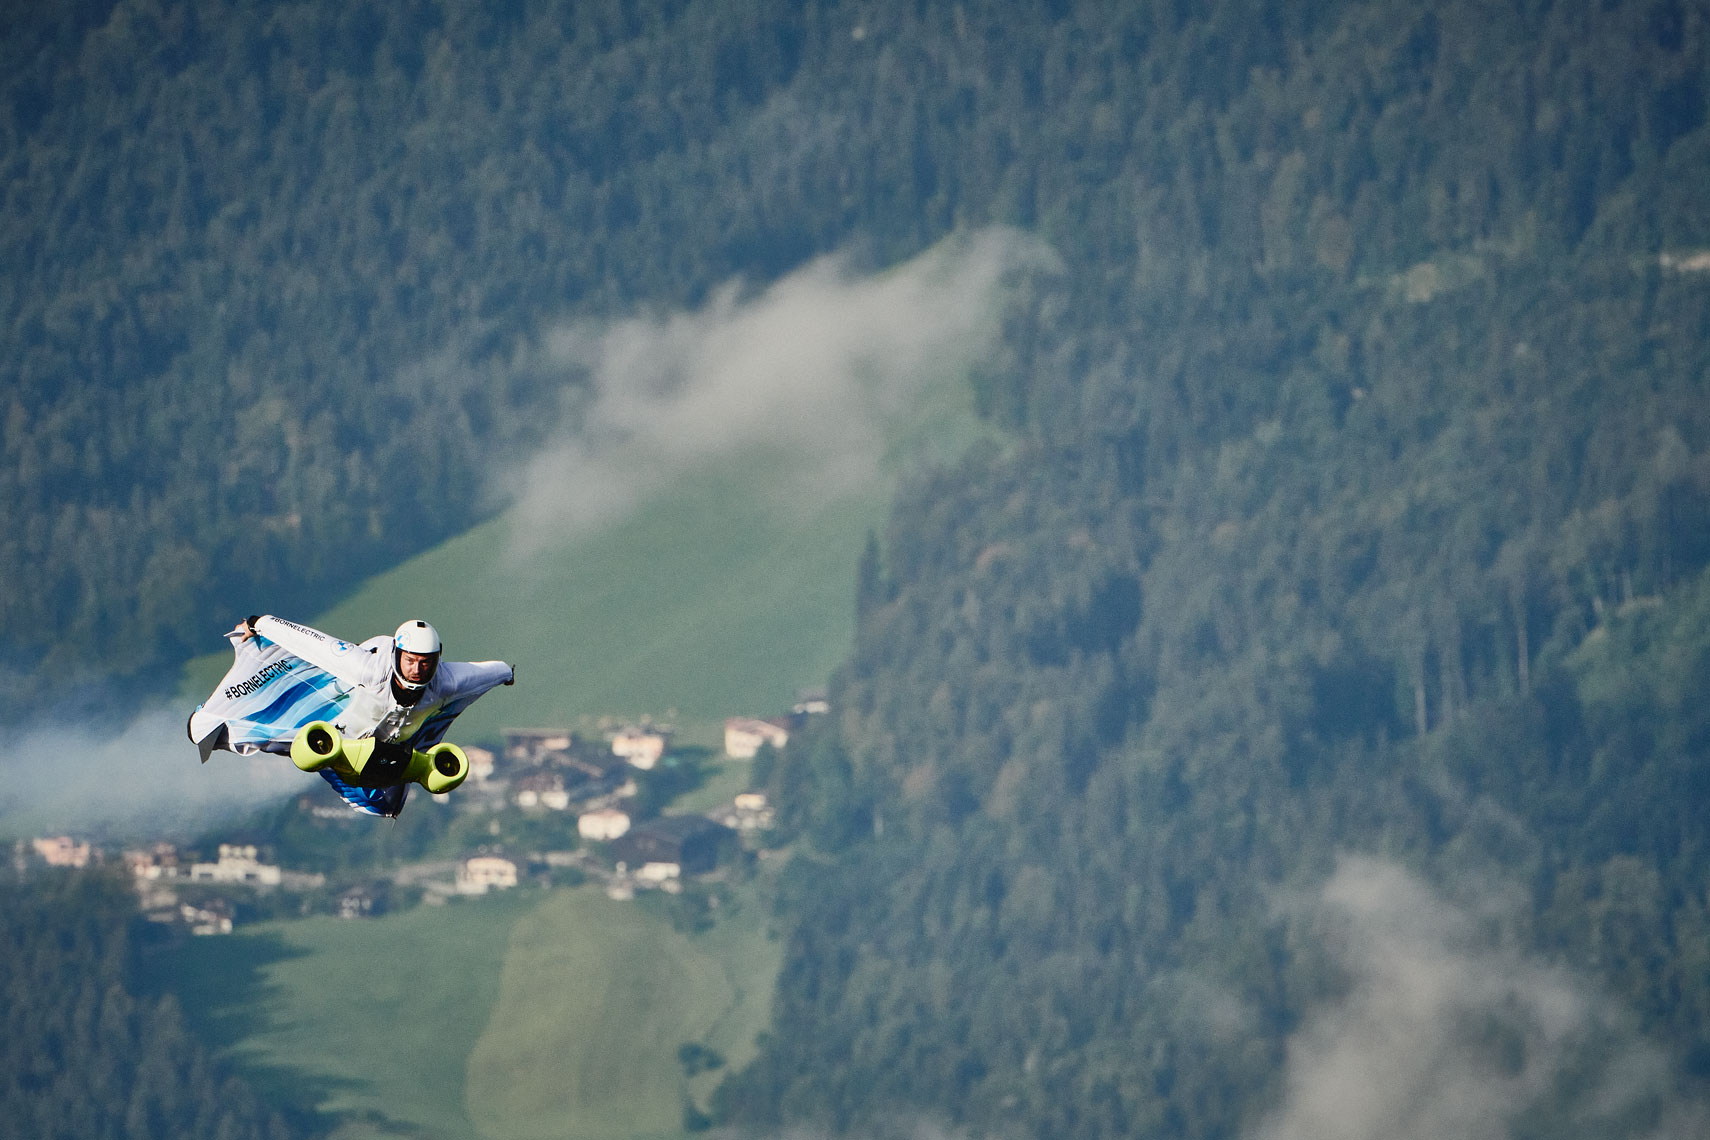 RD_200910_BMW_WINGSUIT_04689